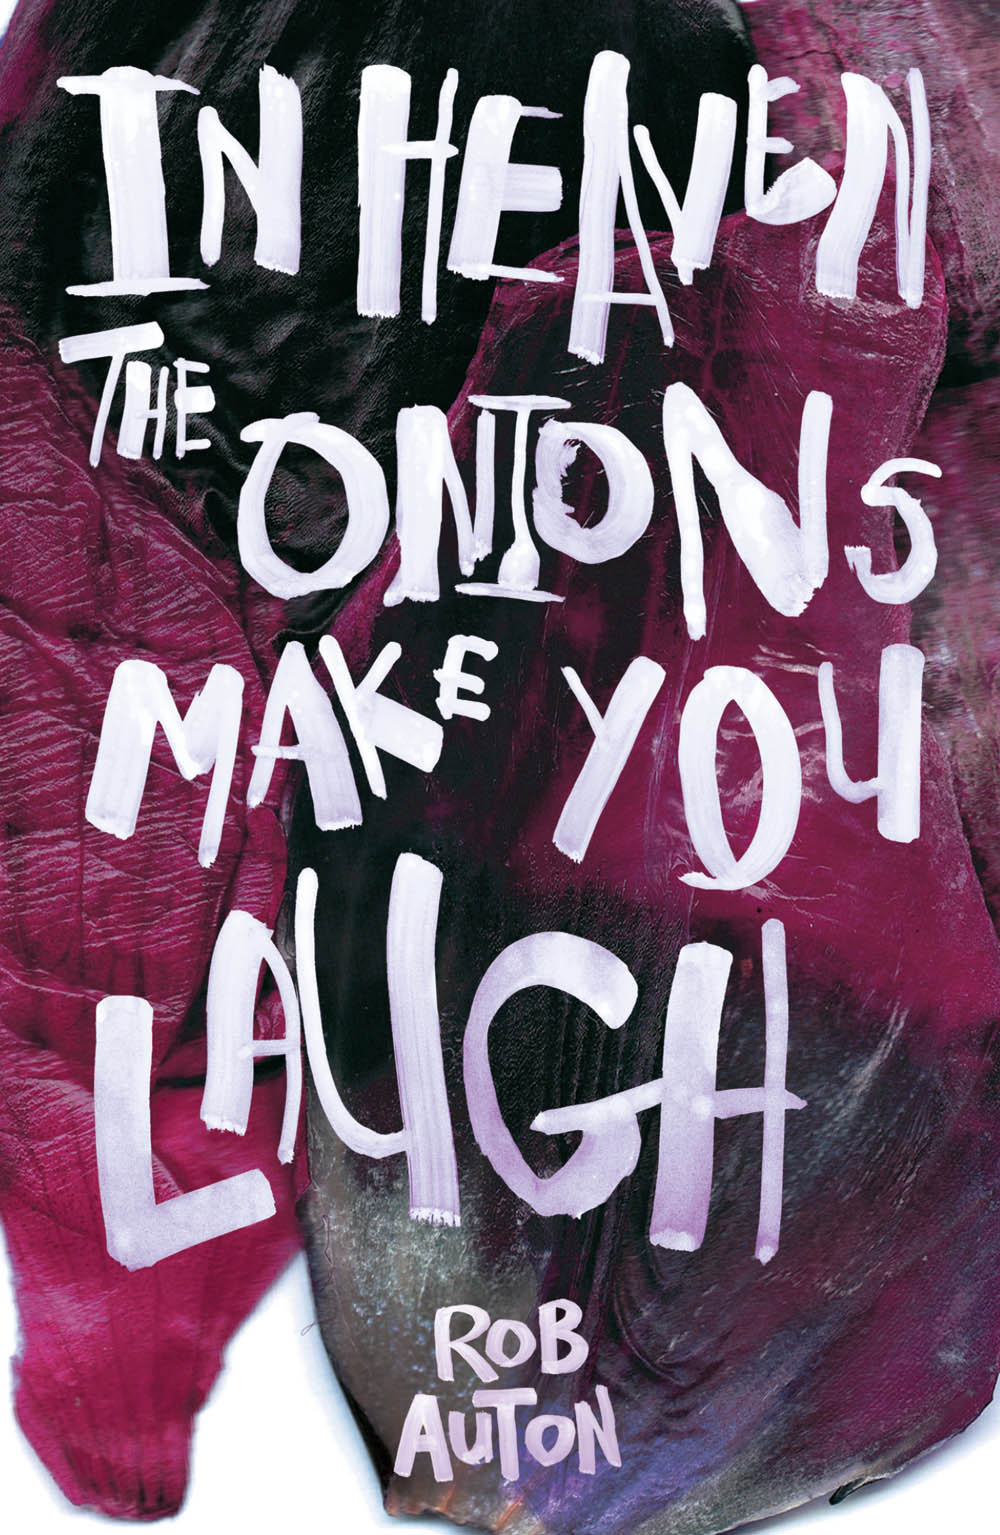 Image of In Heaven The Onions Make You Laugh by Rob Auton